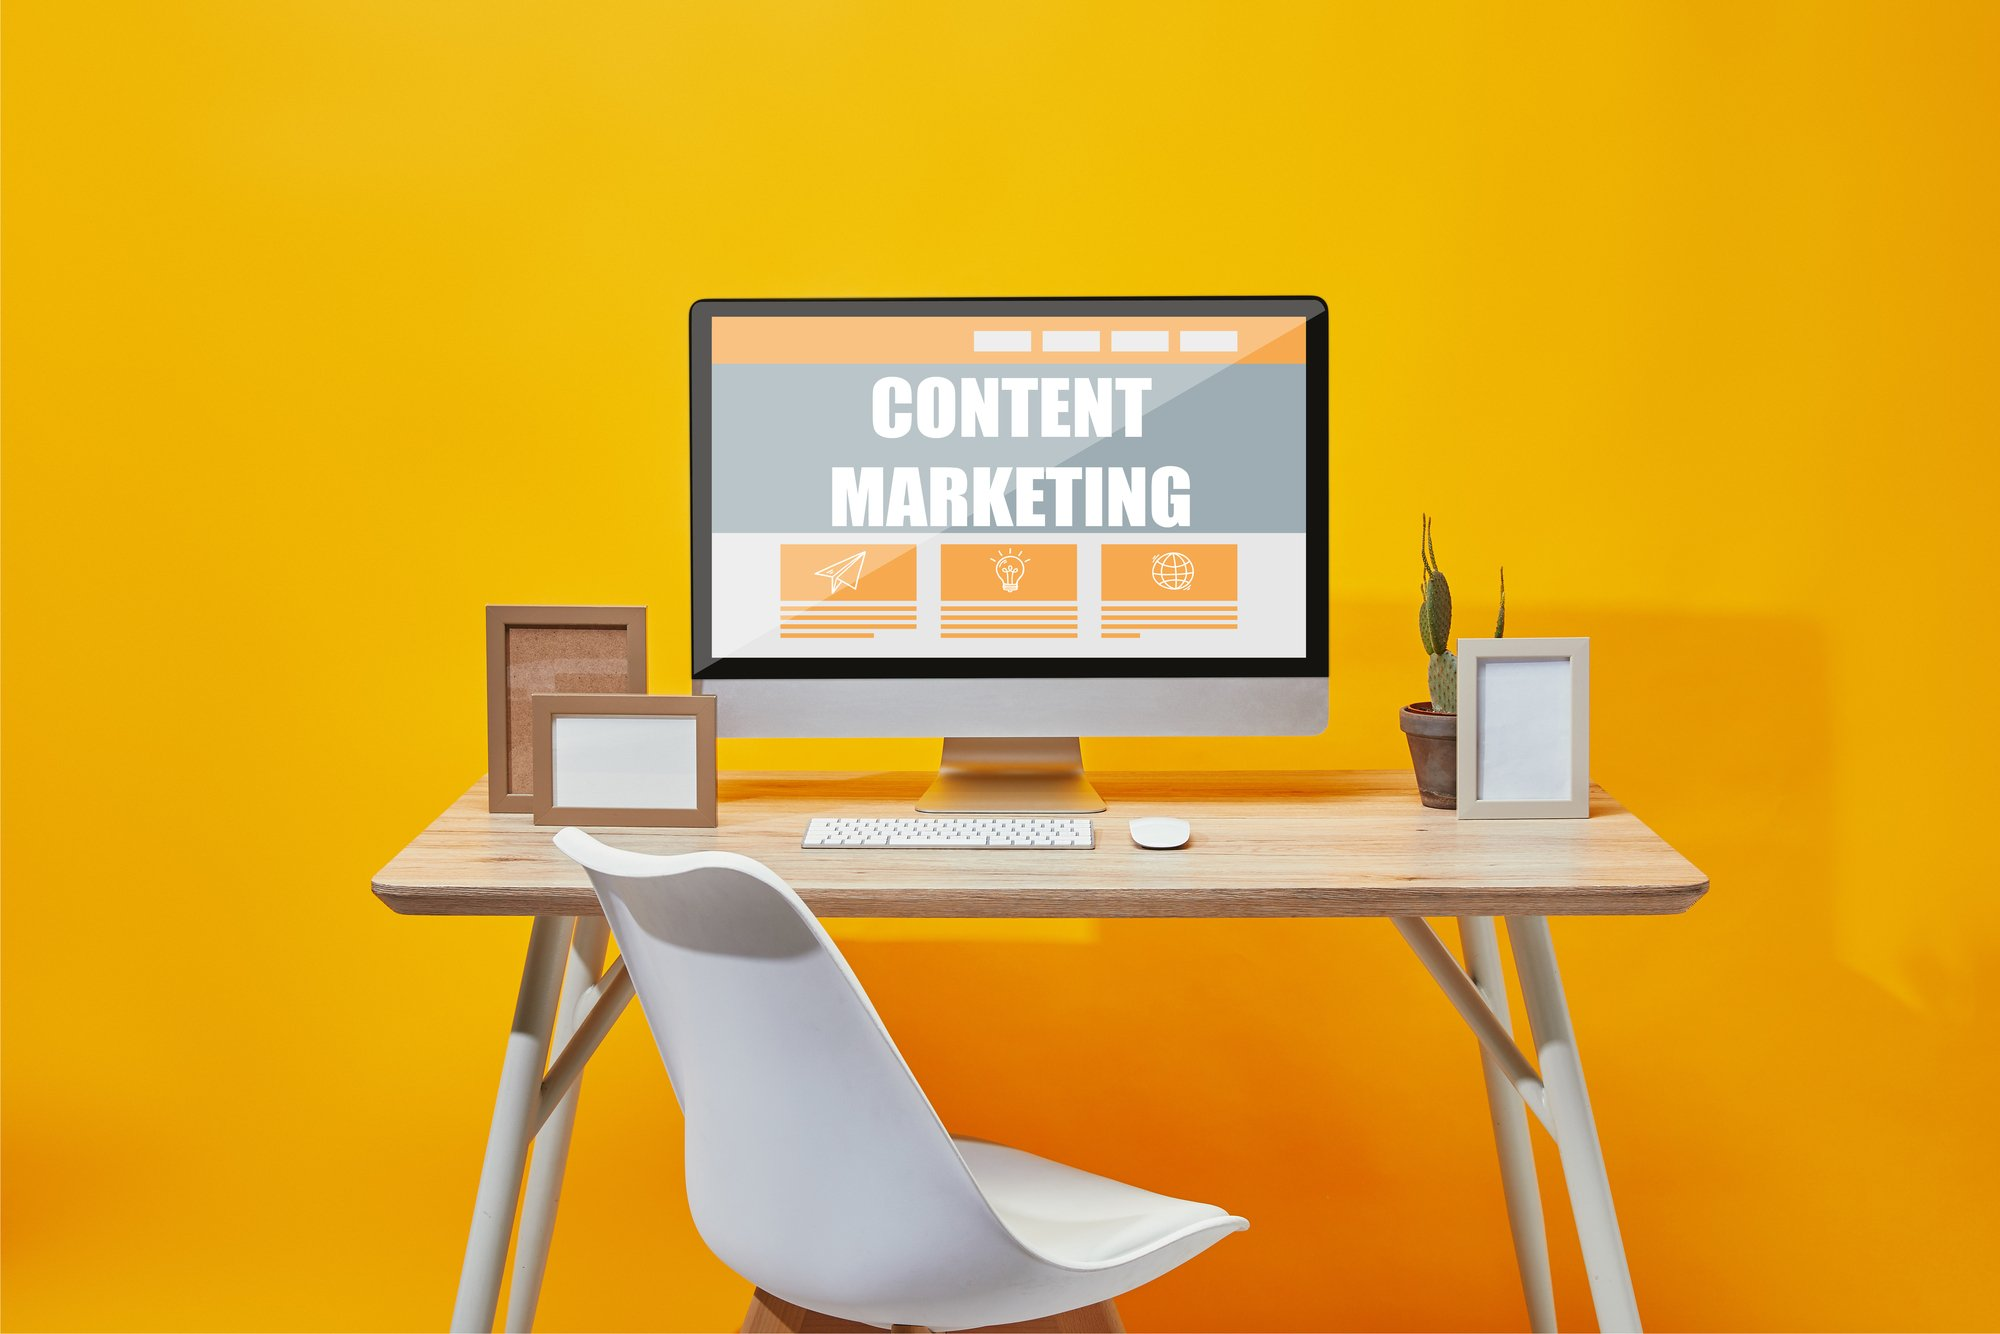 A content marketing guide